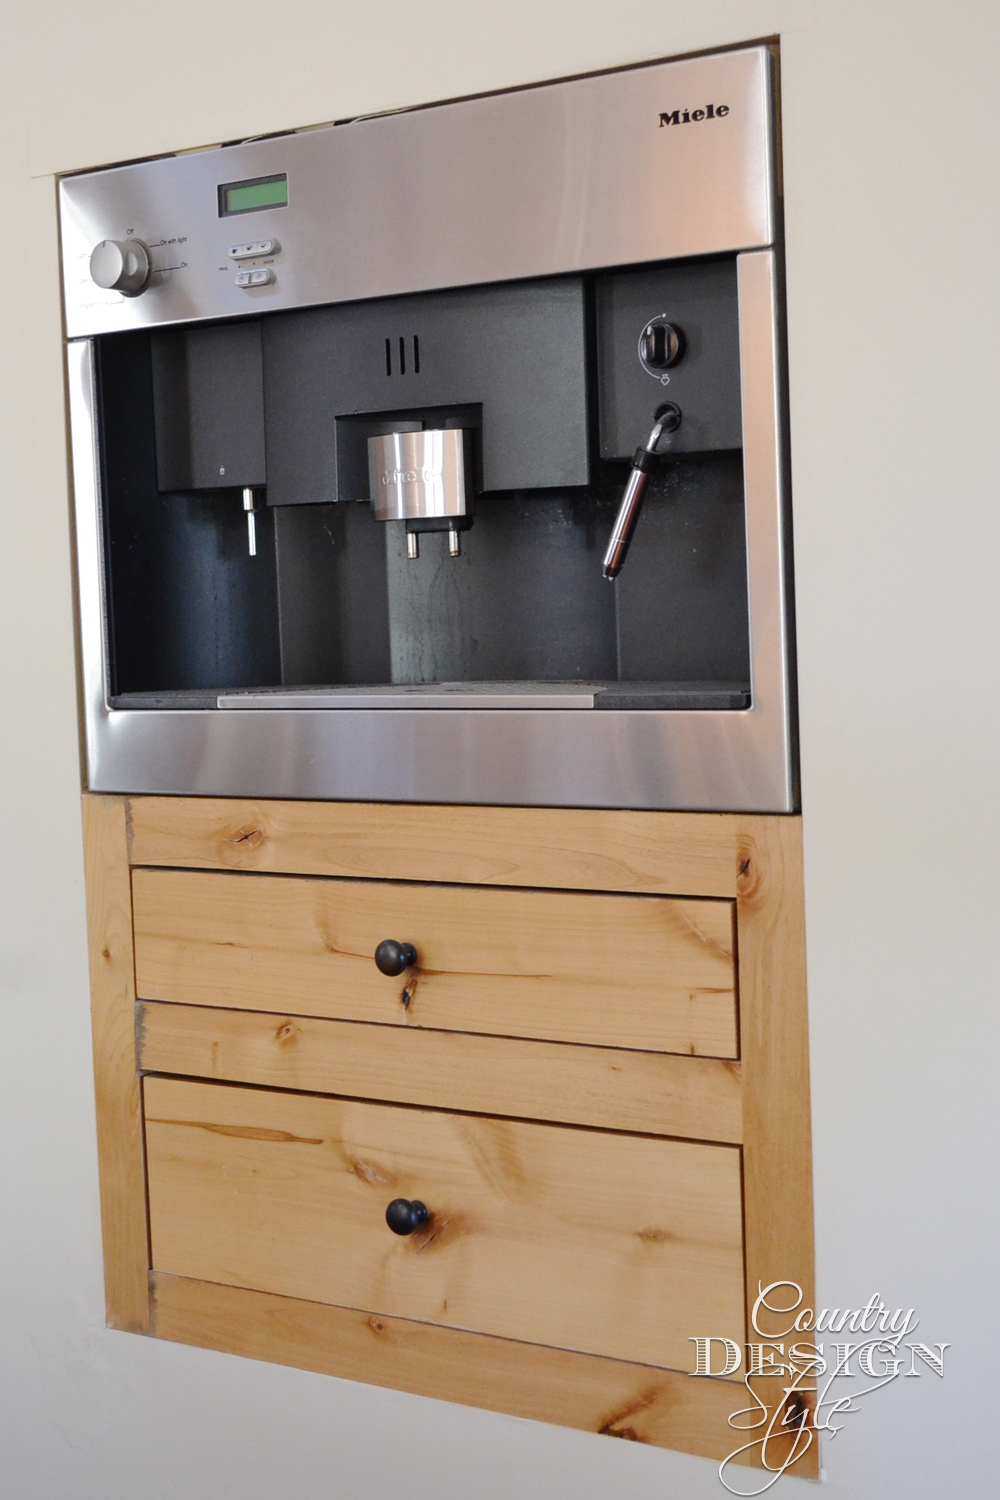 miele-country-design-style